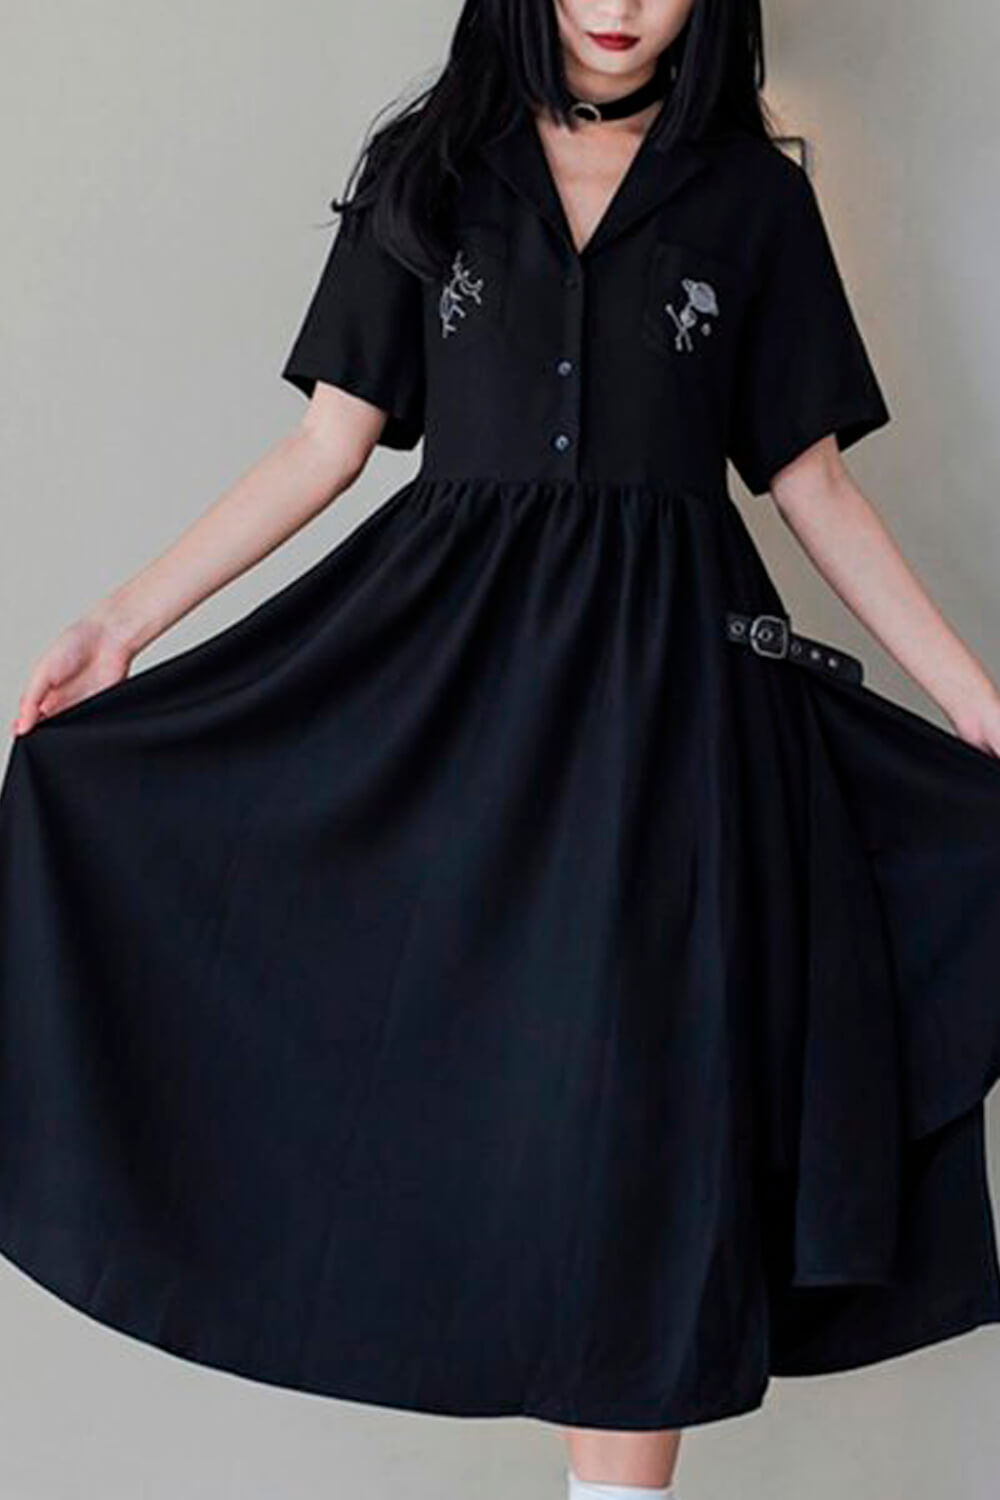 Space Map Embroidery Black Witch Dress